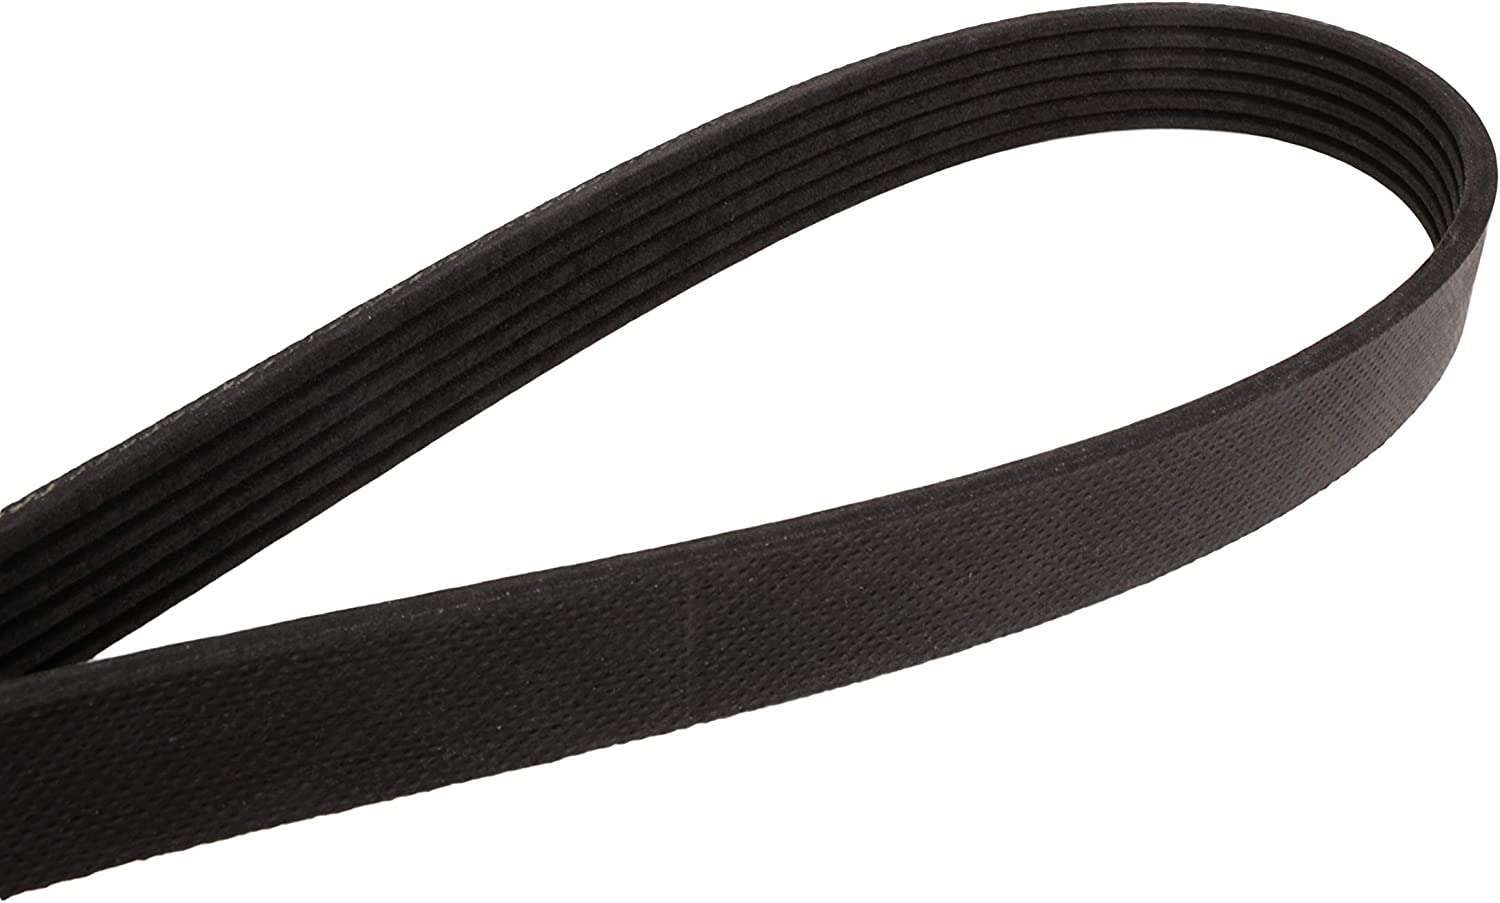 Continental 4060525 OE Technology Series Multi-V Belt